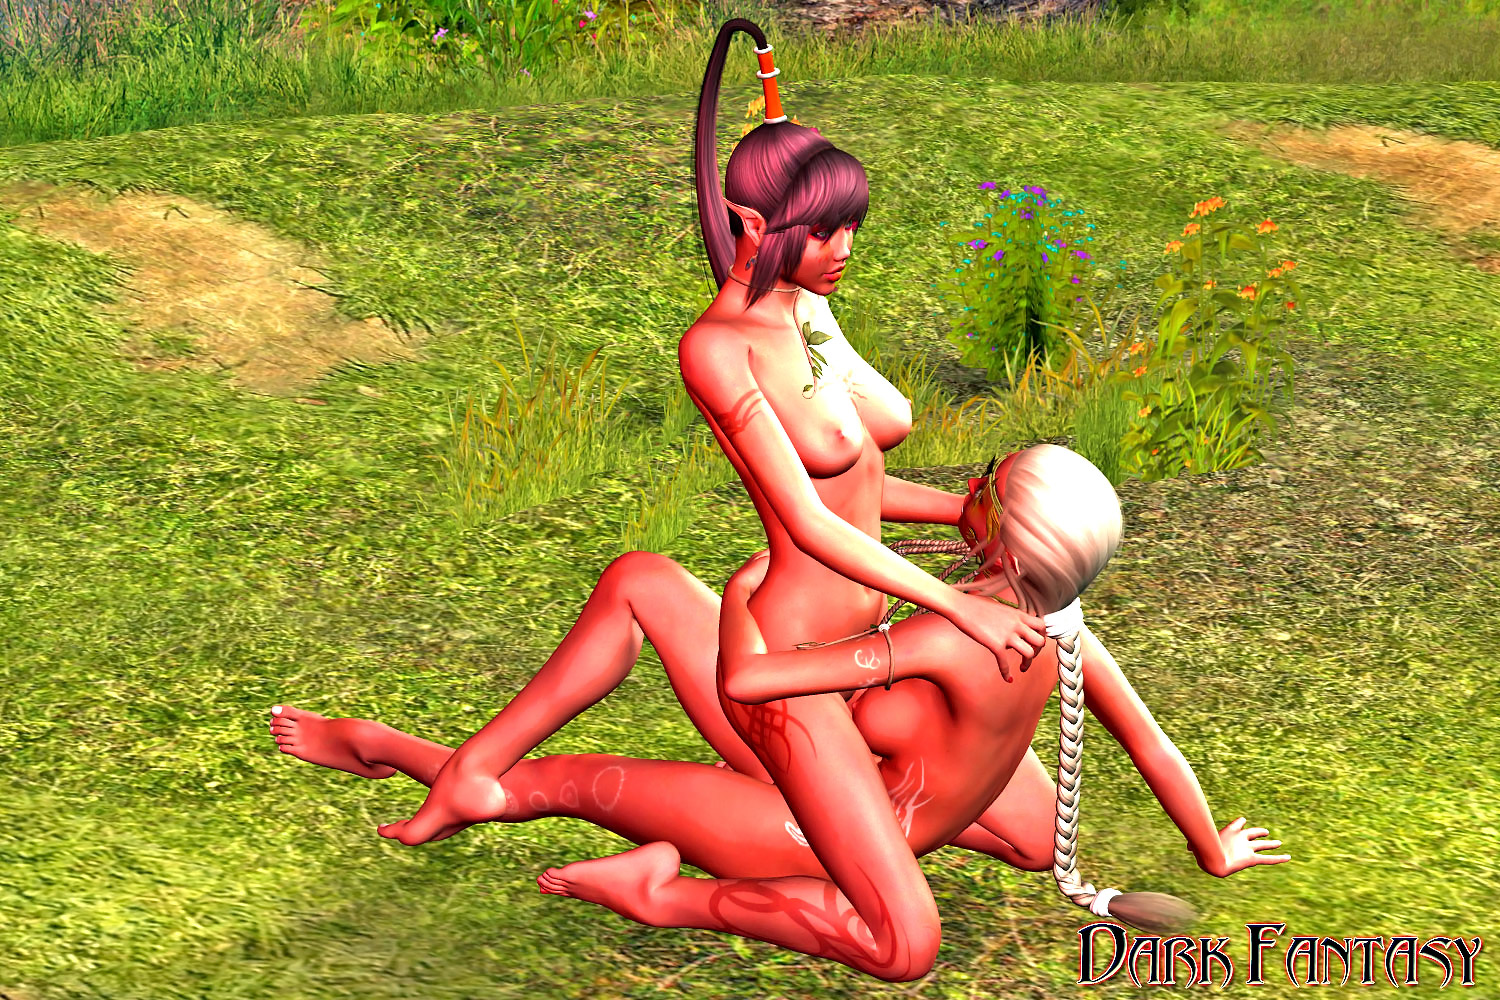 Free 3d dark fantasy porn erotic download